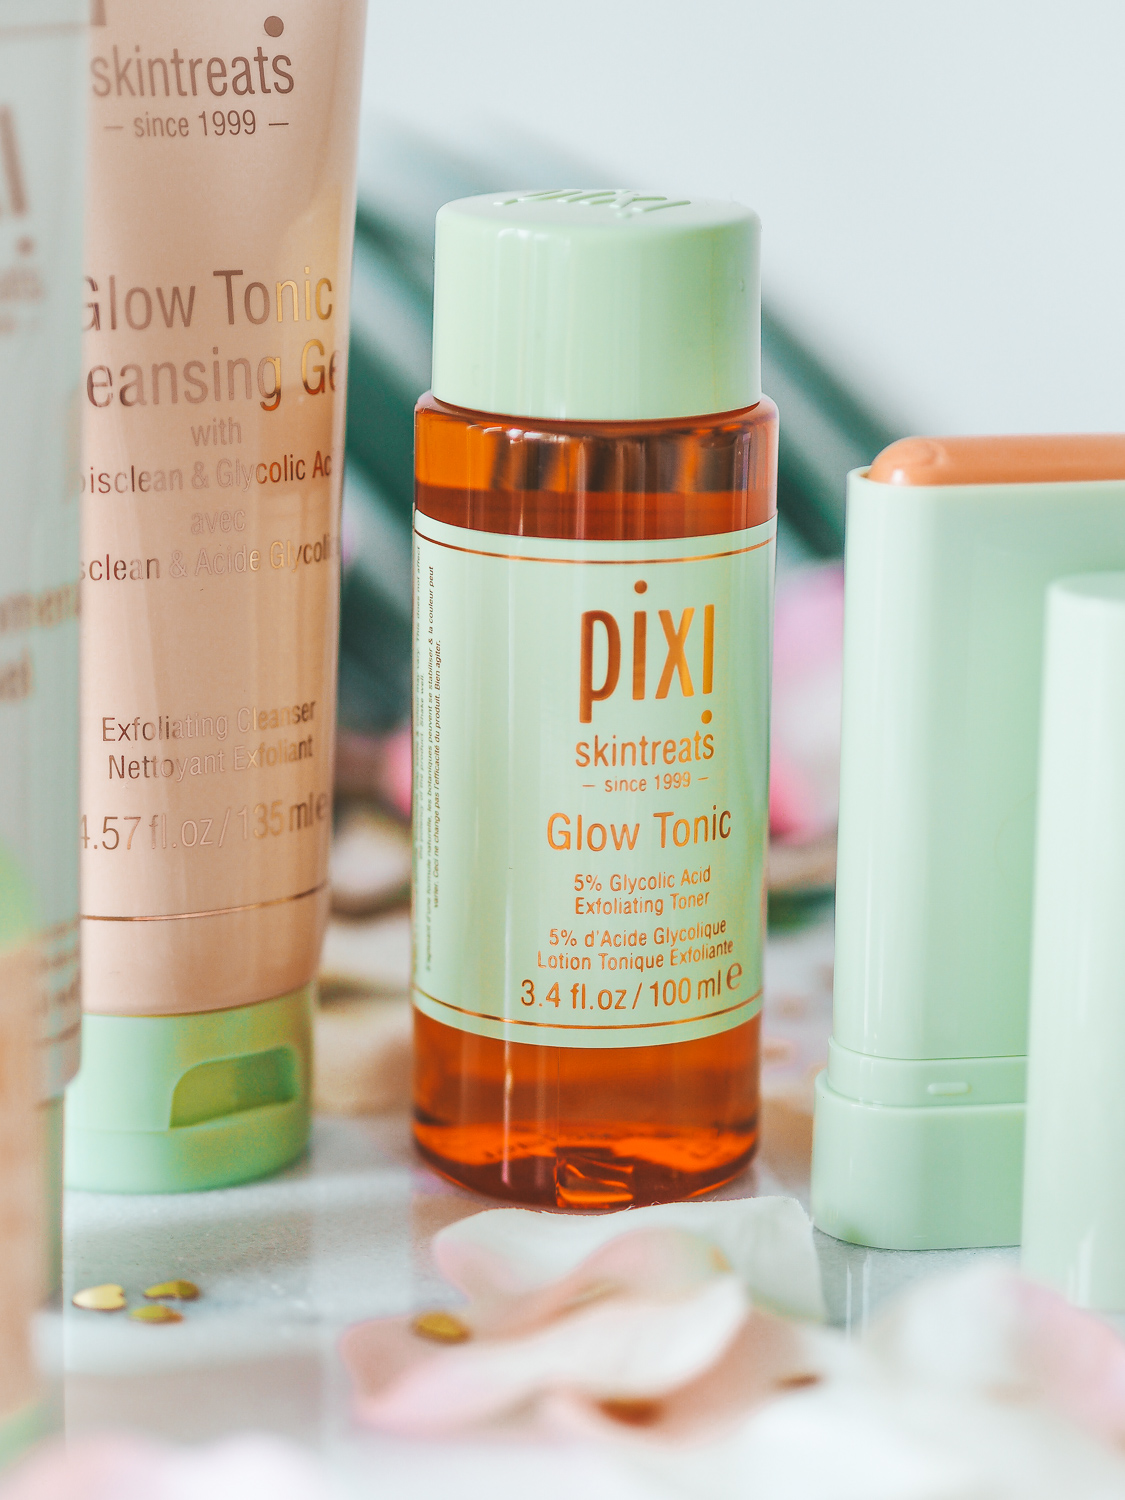 Product shot of the Pixi glow tonic